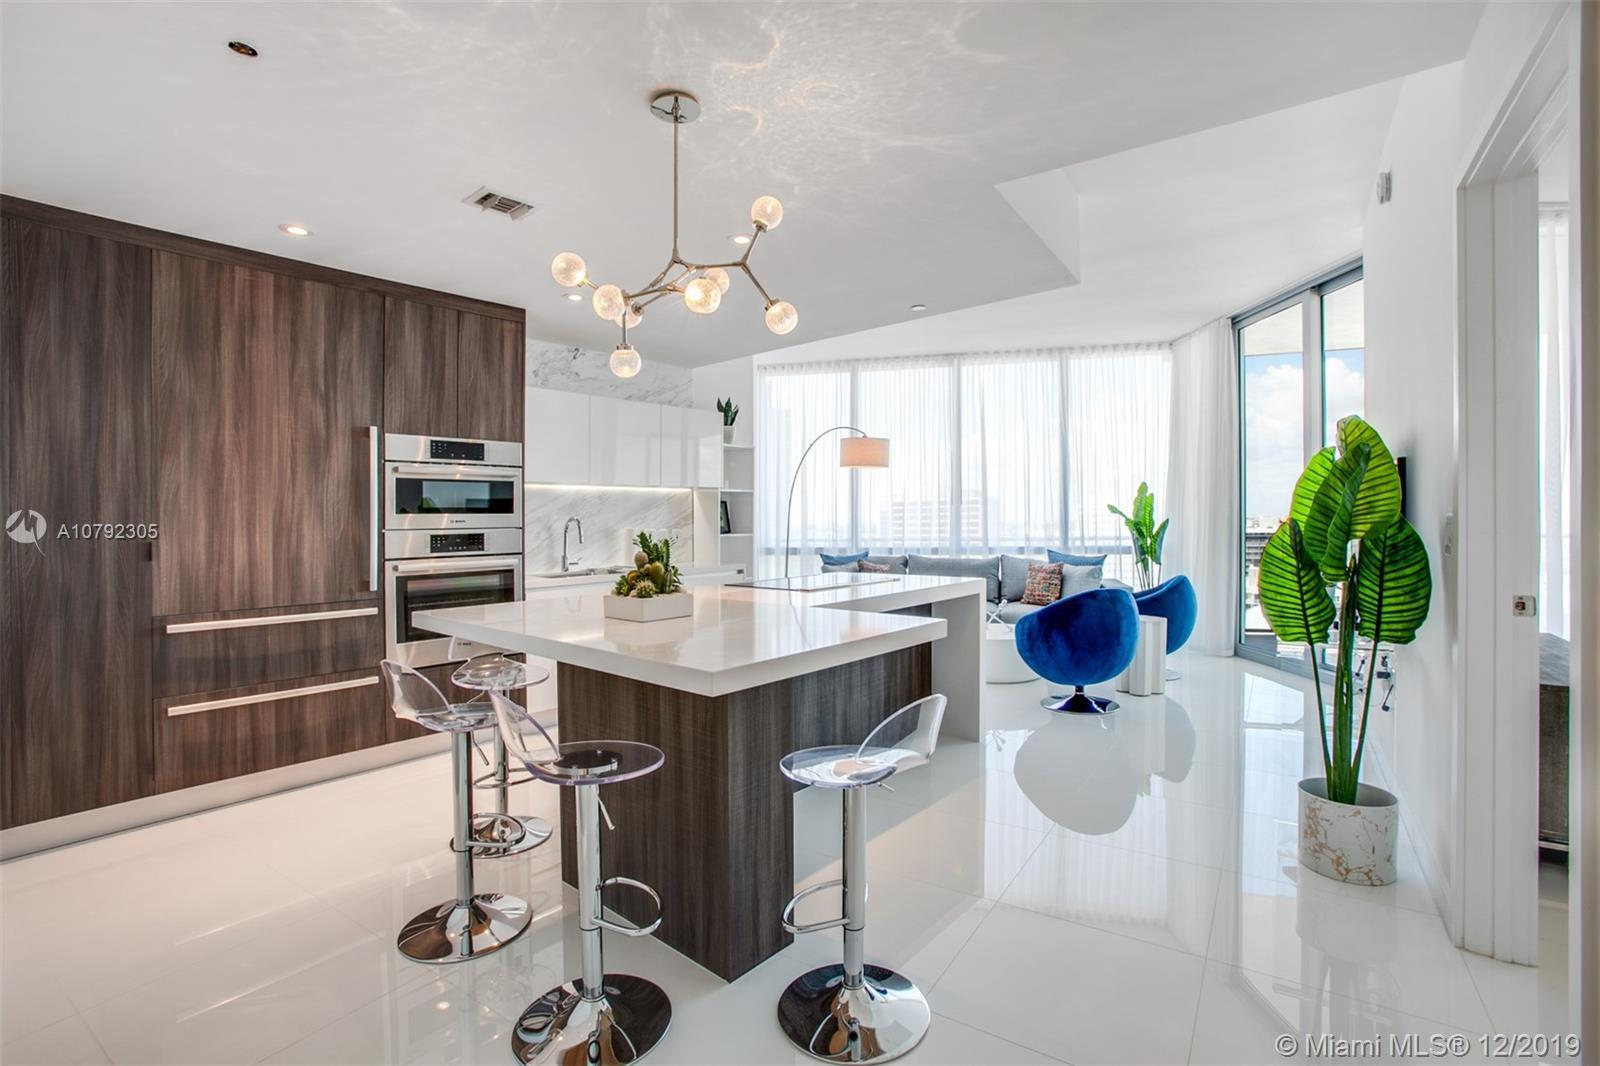 Brand New Luxury 1 Bed + Den /2 bath Residential Condo at the Miami World Center with 10 Foot ceilin